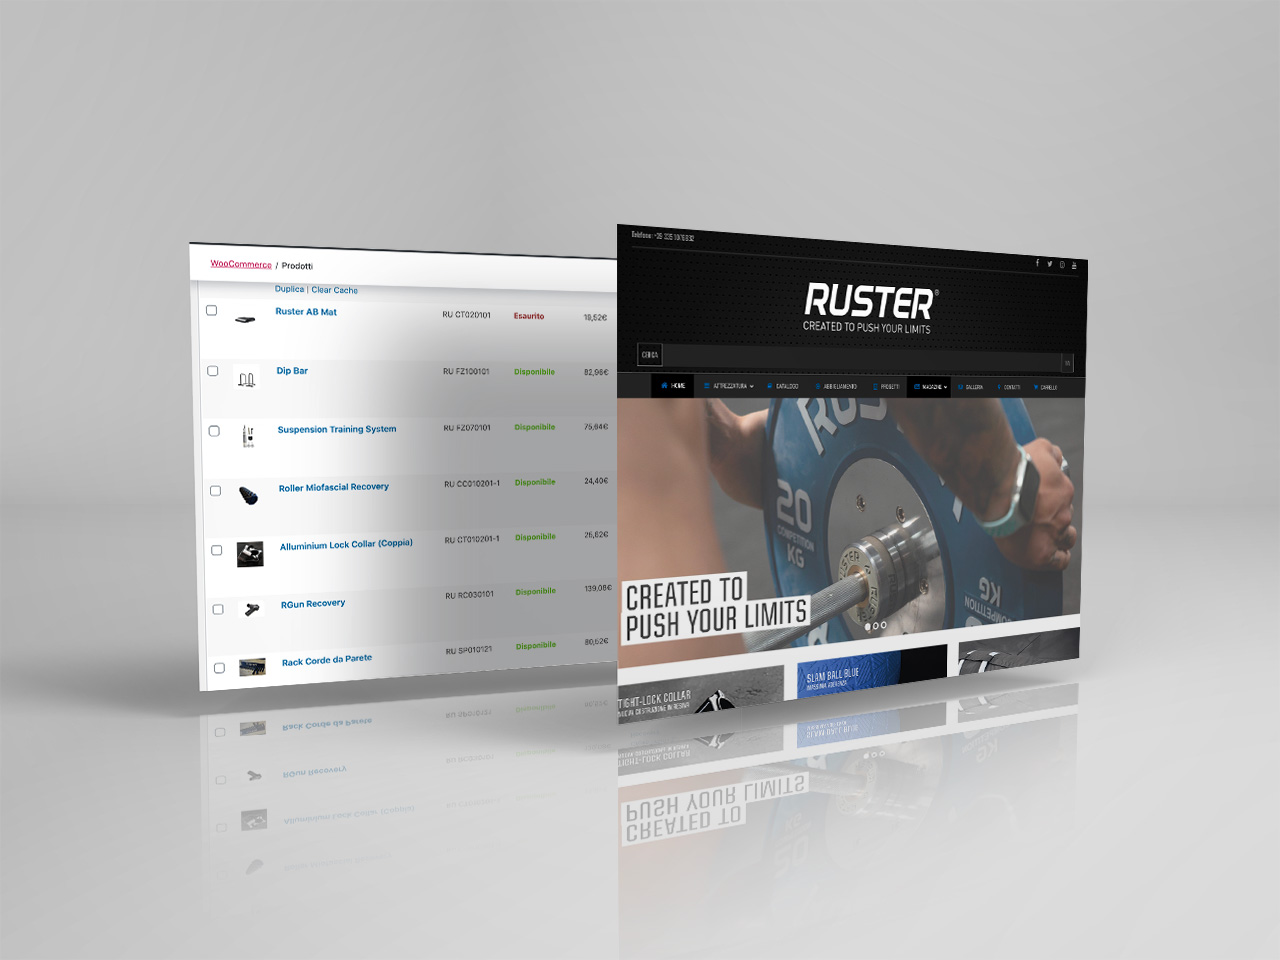 clienti ruster fitness gestione ecommerce woocommerce